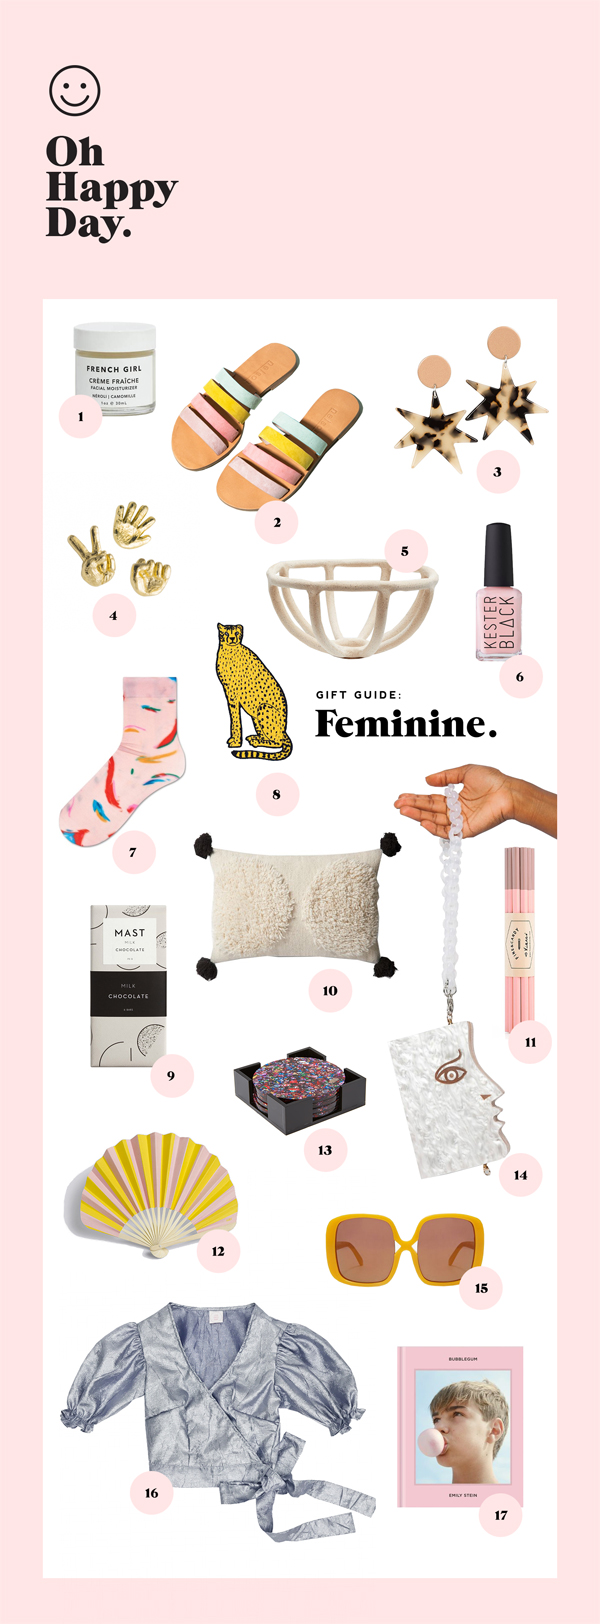 Holiday Gift Guide: Feminine | Oh Happy Day!